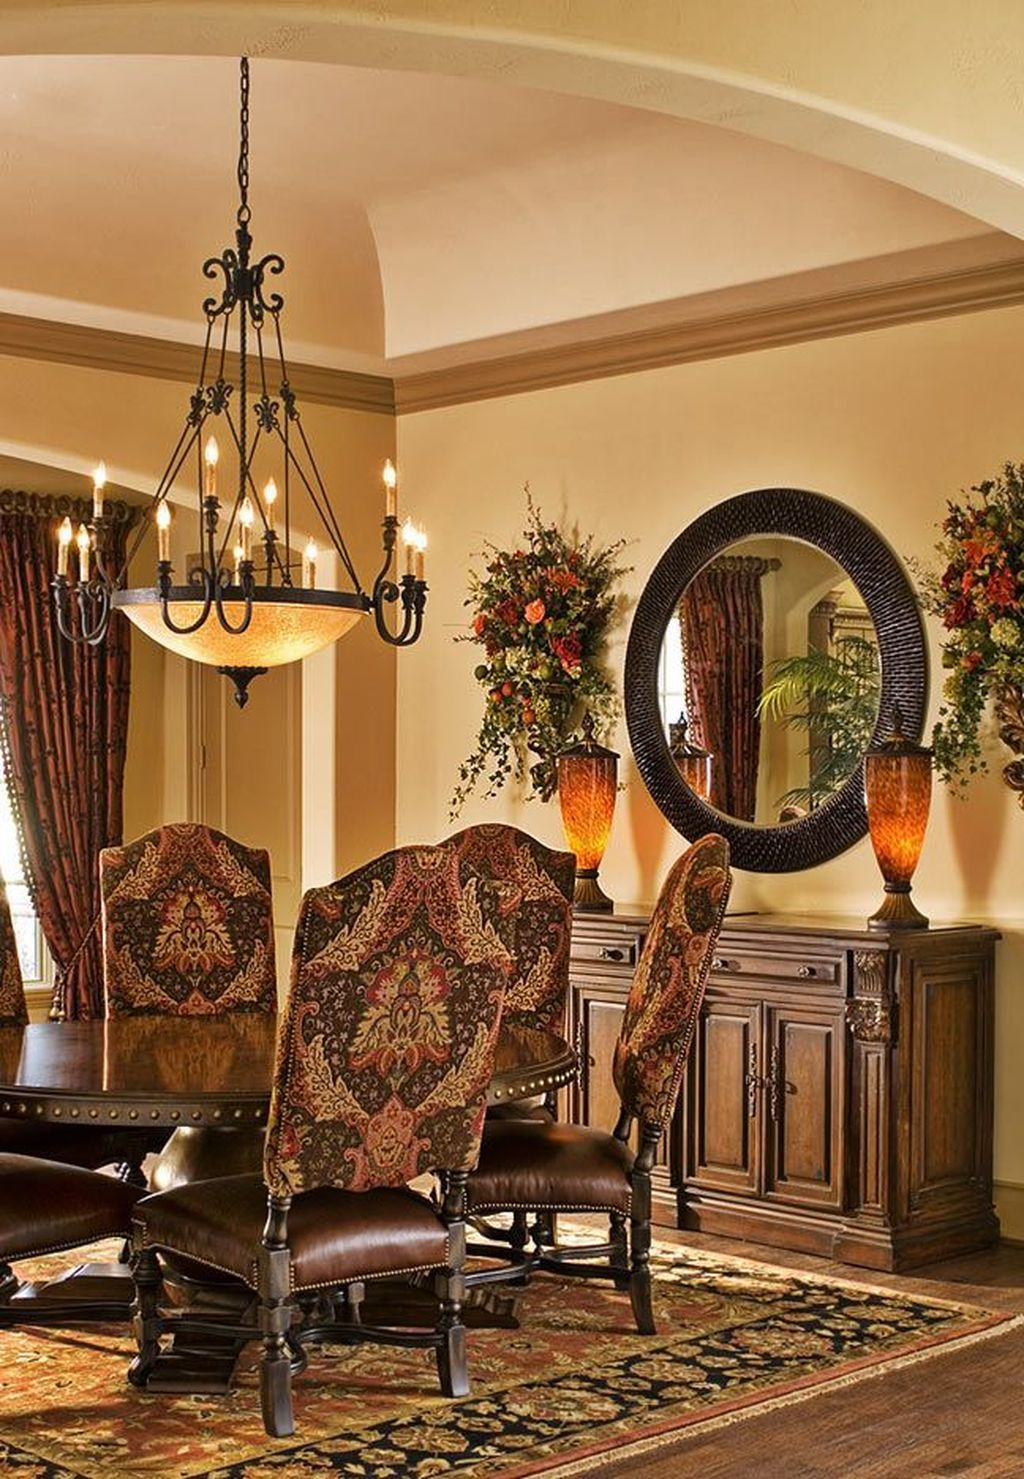 Popular Tuscan Home Decor Ideas For Every Room 31